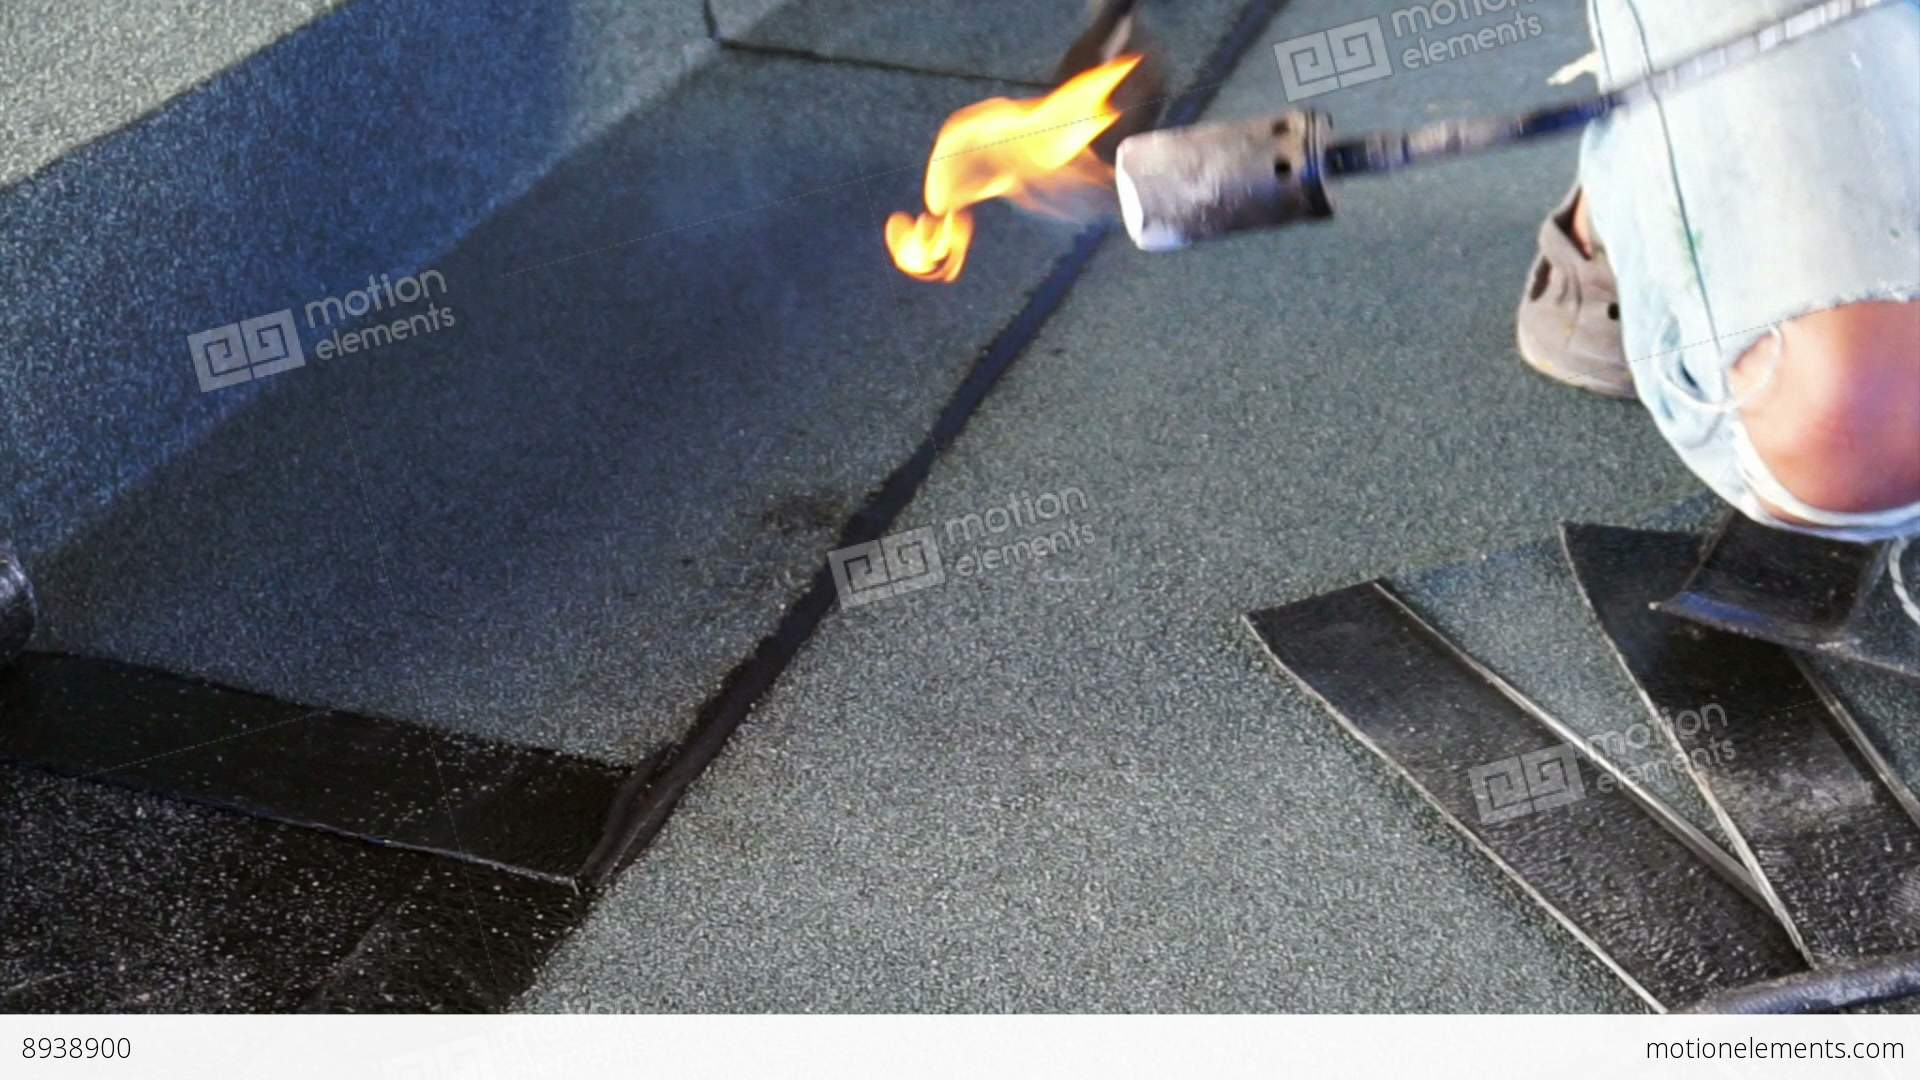 Marvelous Asphalt Roof Coating With Fire, Bitumen Water Protection... Stock Video  Footage